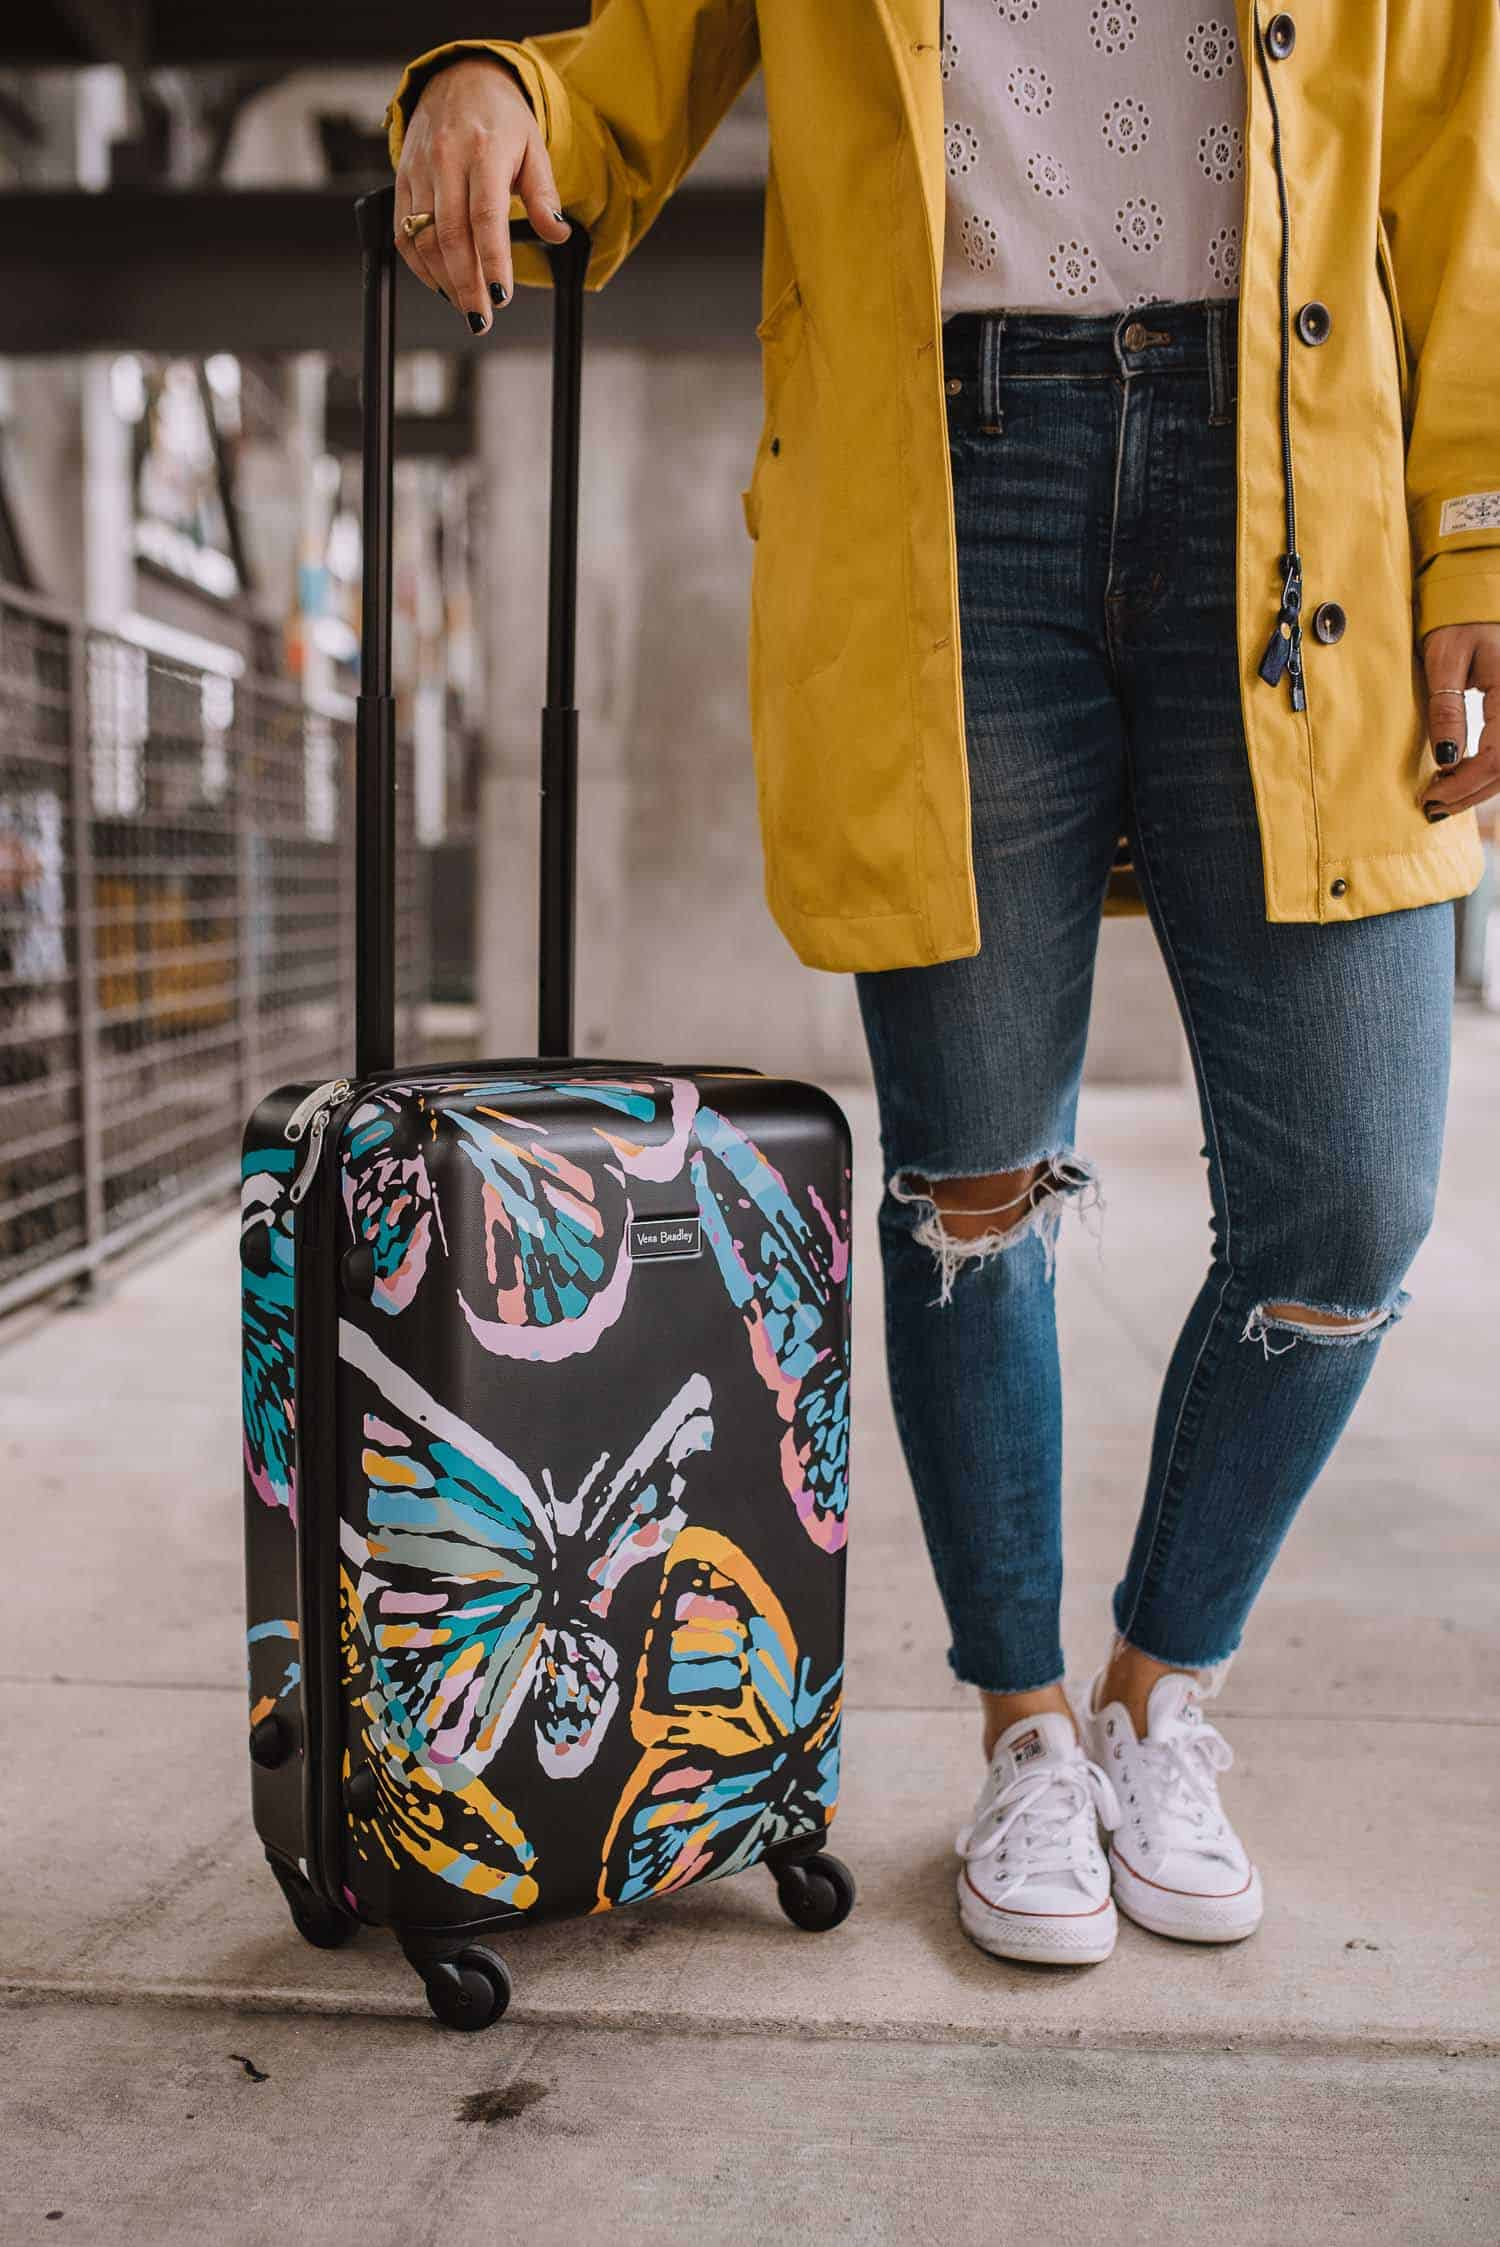 Bright Suitcases To Travel With - My Style Vita